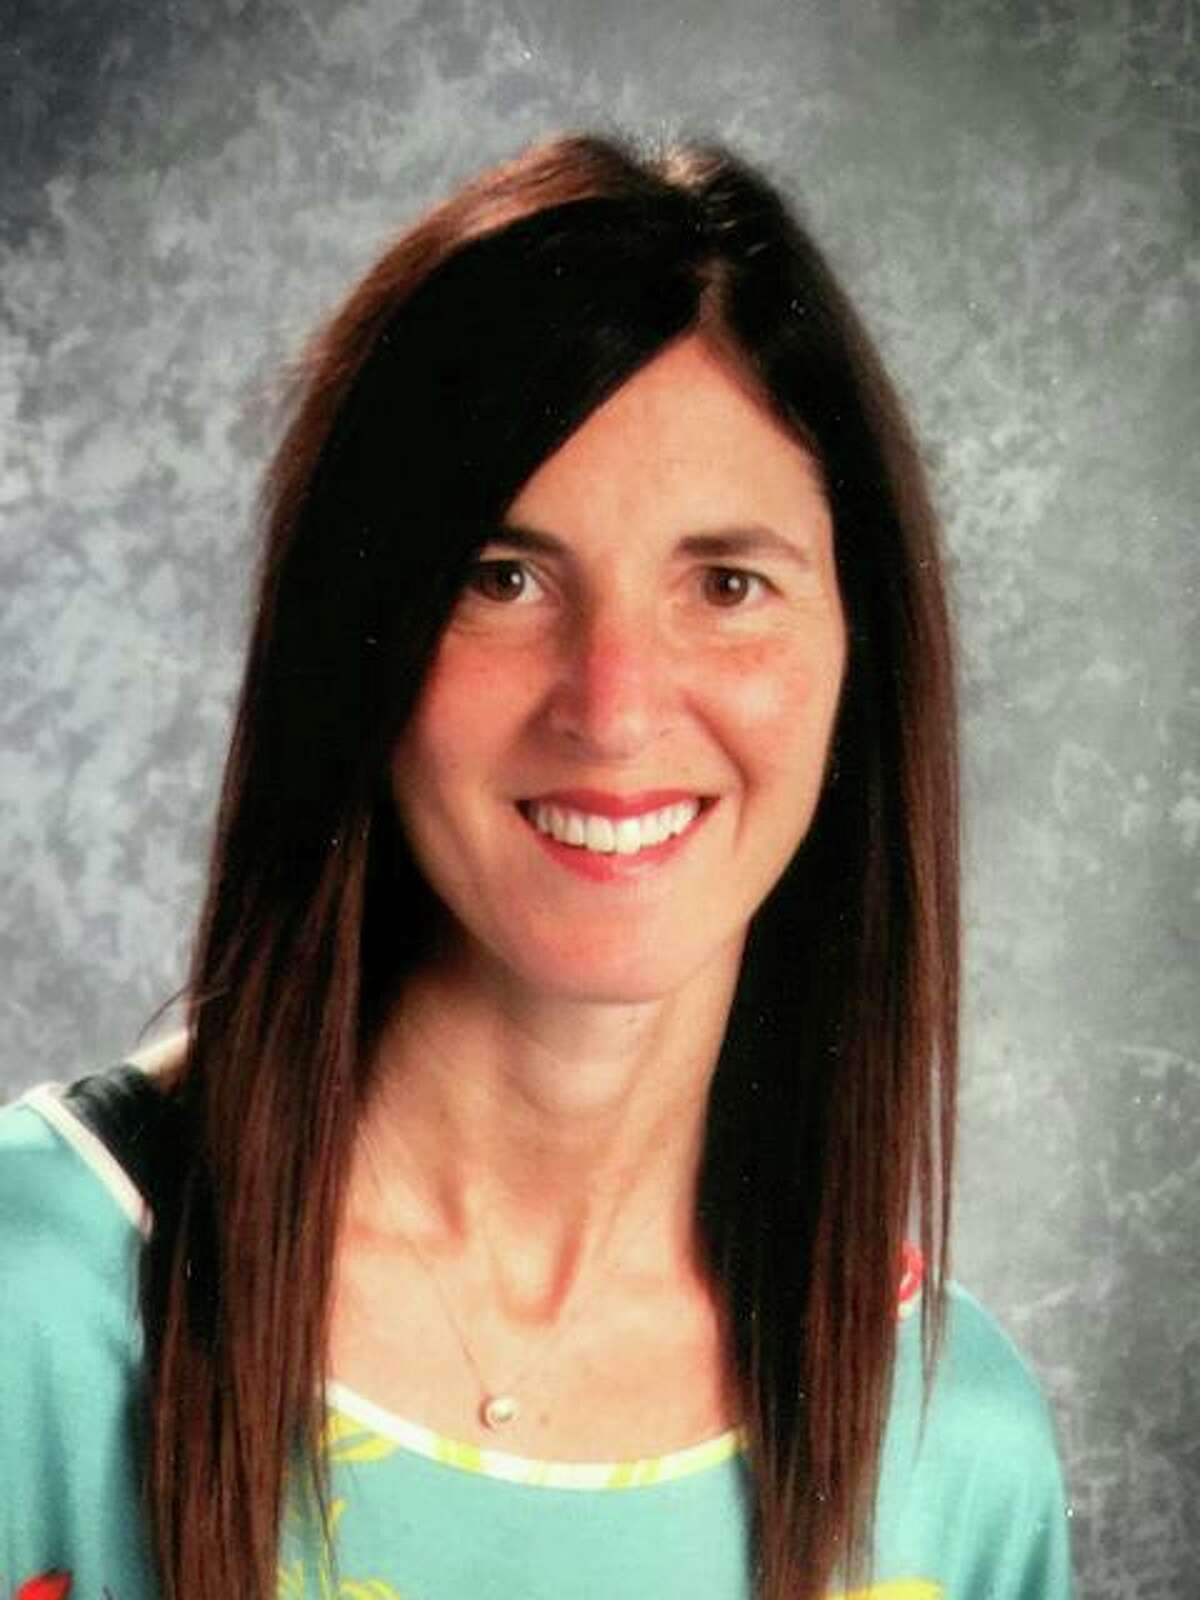 Nora Gaydos will bring to the Board of Education experience teaching and writing children's books aimed at learning readers.